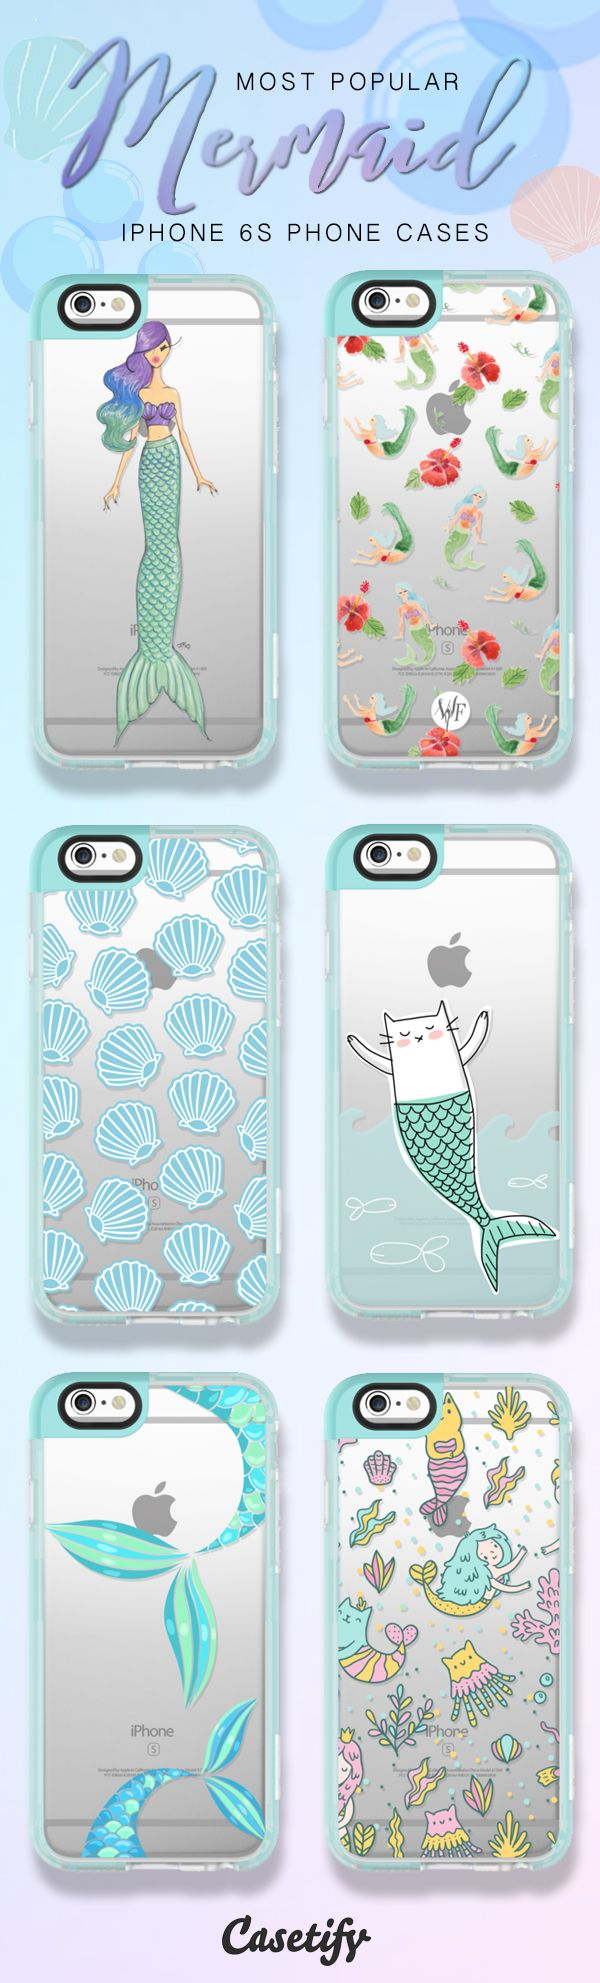 Most popular mermaid iPhone 6S phone cases here > https://www.casetify.com/artworks/uxigEoKtOs